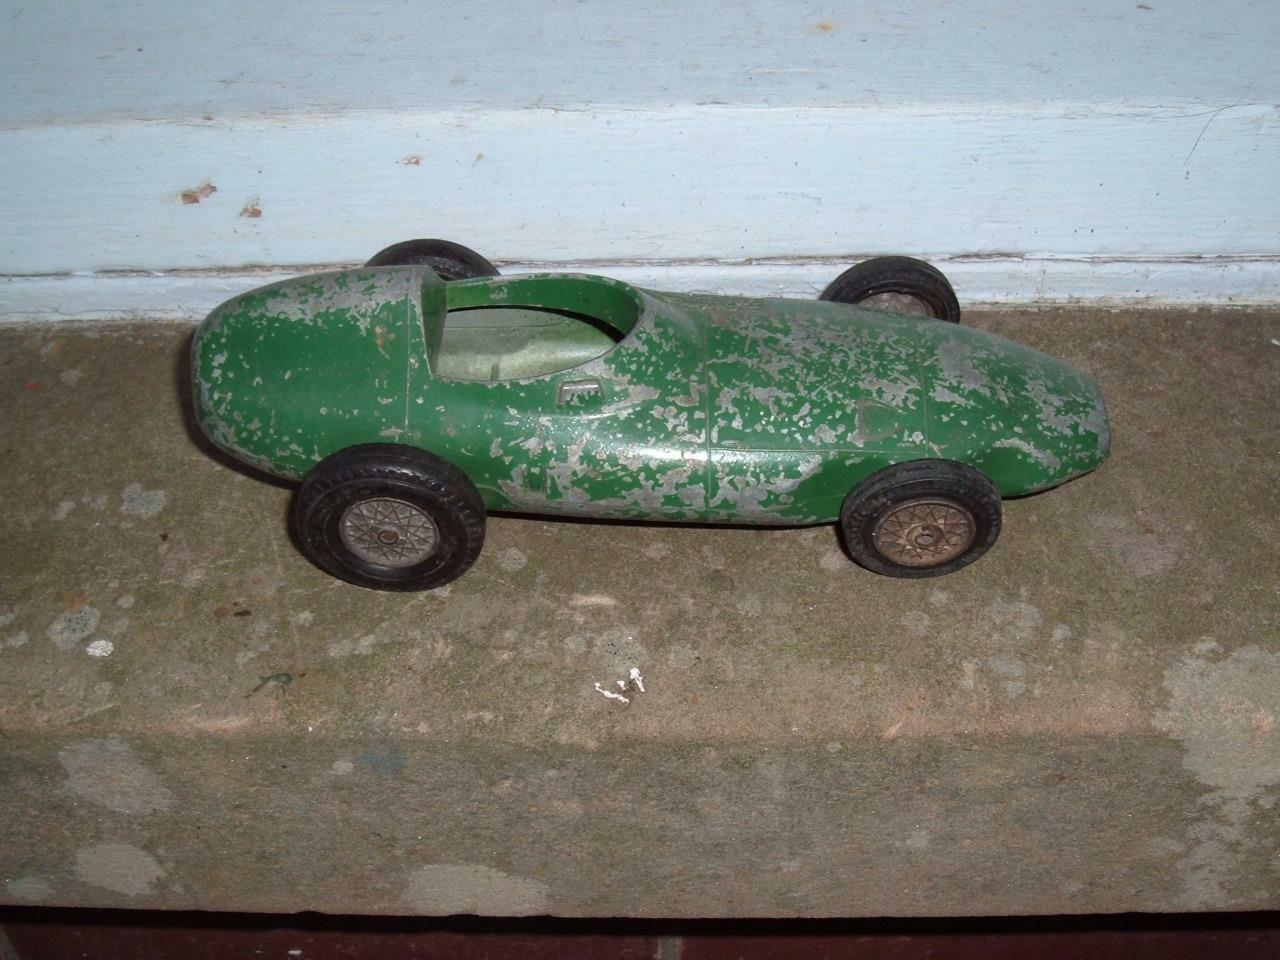 METTOY CORGI 1 24 ISH VANWALL GRAND PRIX RACING CAR NEEDING RESTORATION